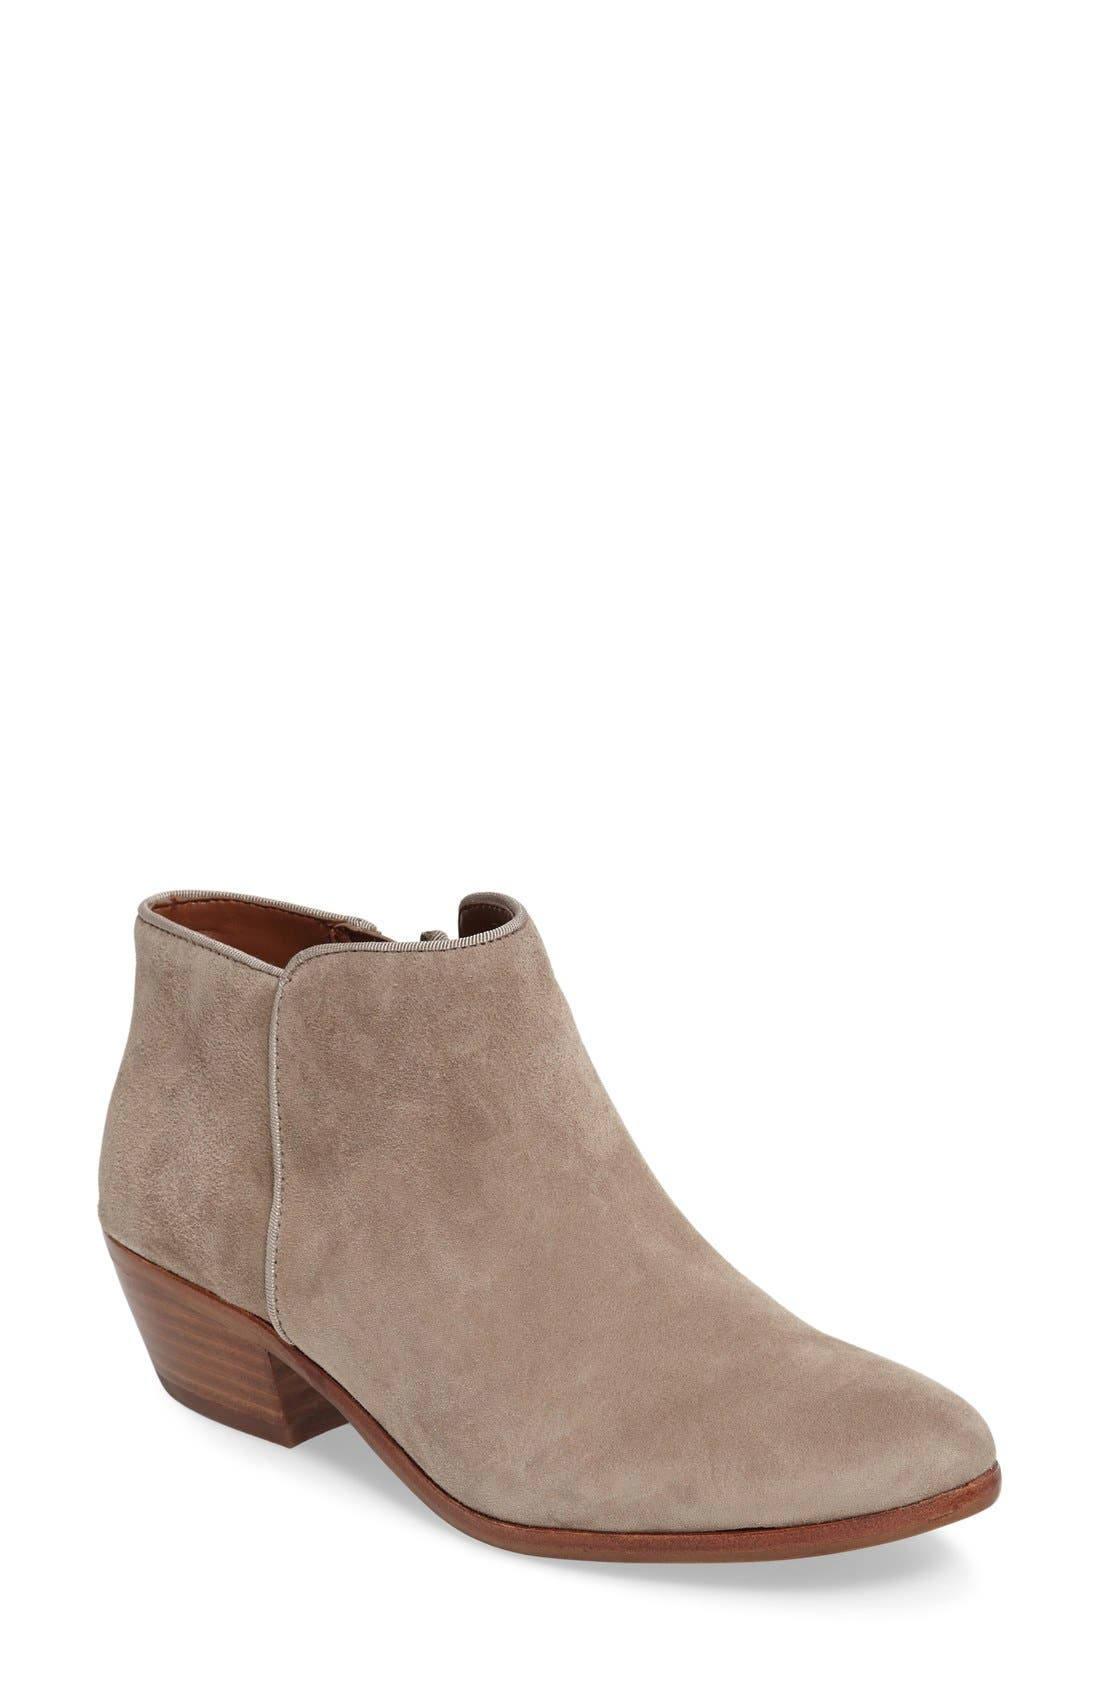 'Petty' Chelsea Boot,                         Main,                         color, Putty Suede